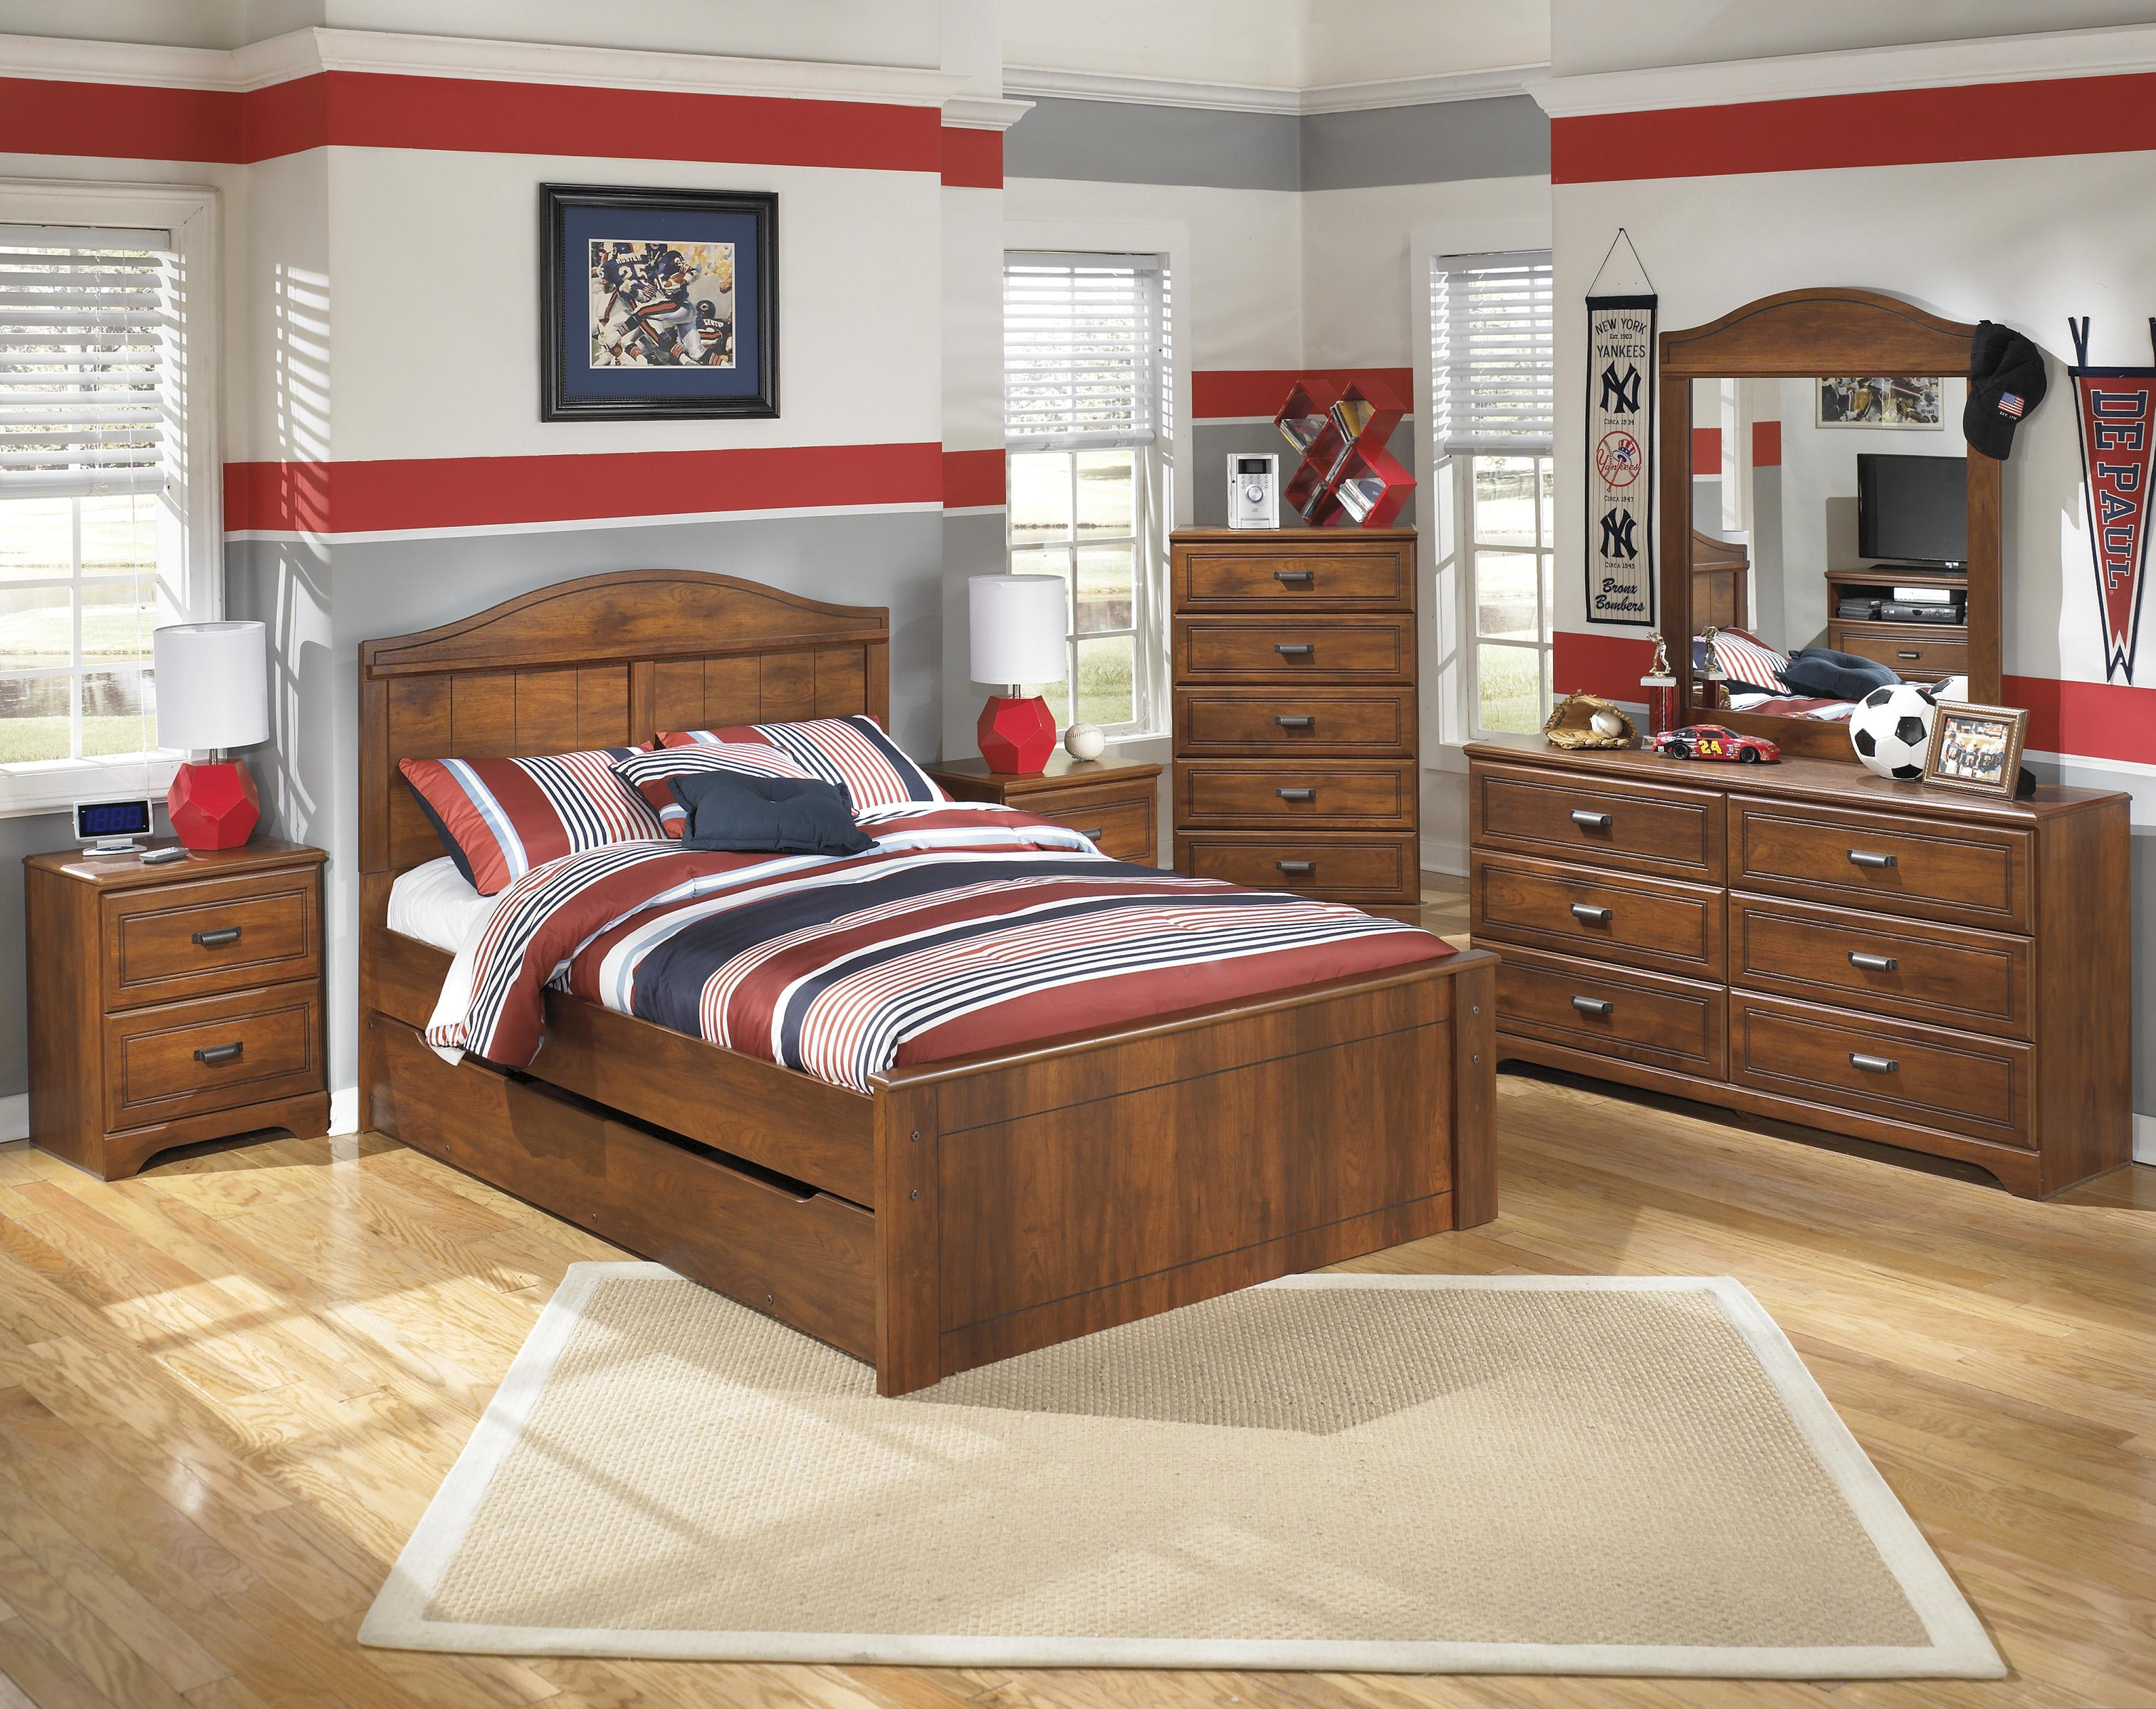 Signature Design by Ashley Barchan Full Bedroom Group - Item Number: B228 F Bedroom Group 2